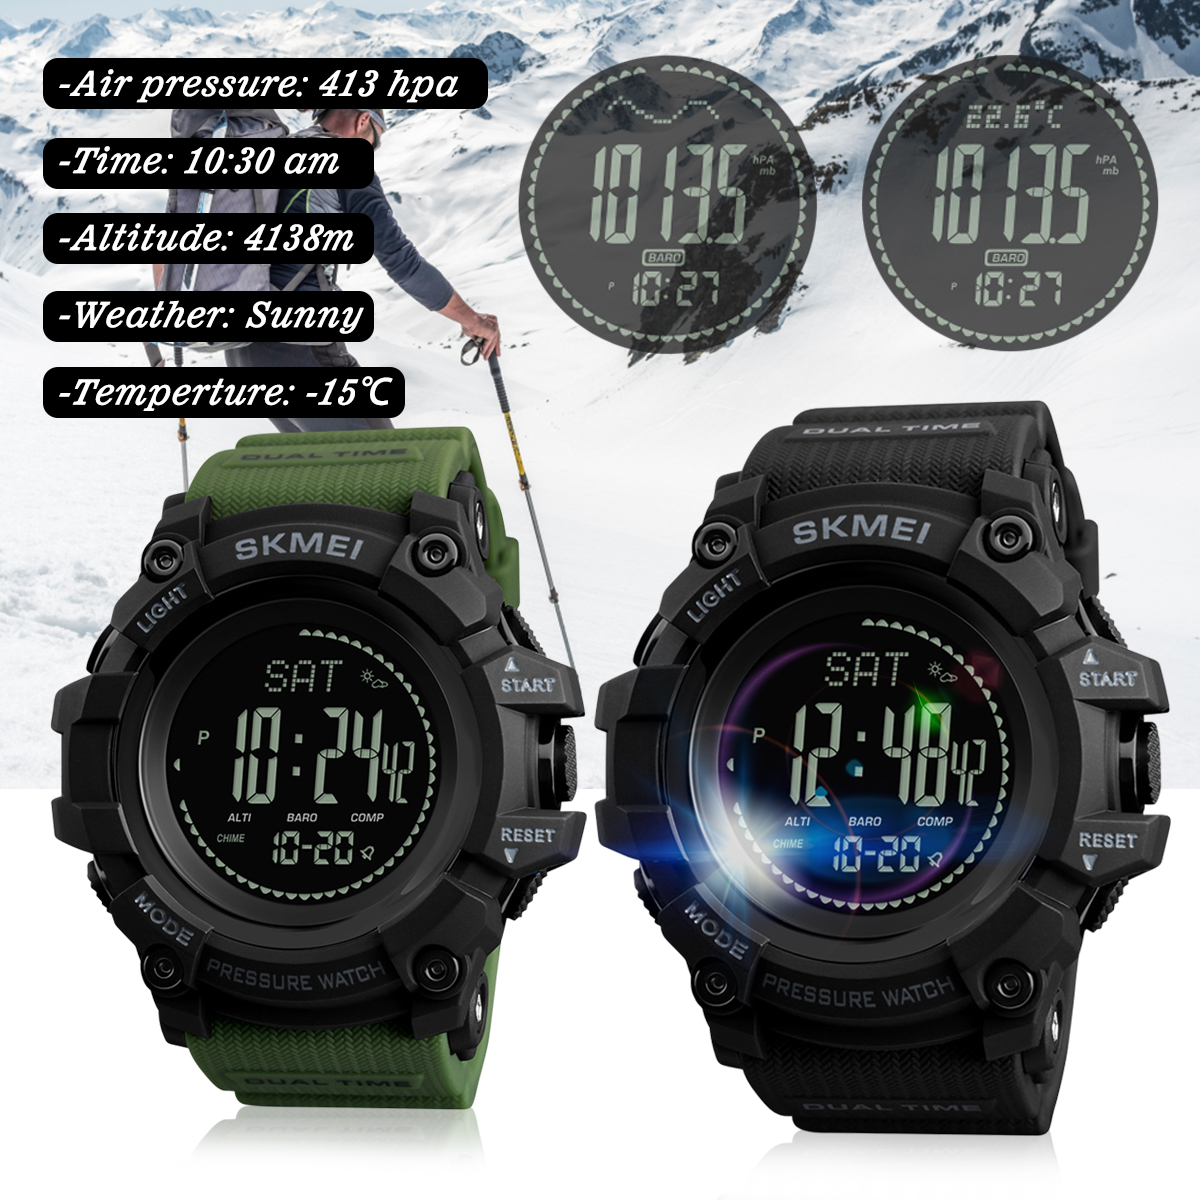 SKMEI 1358 3ATM Waterproof Smart Watch Pedometer Barometer Thermometer Altimeter Compass Outdoor Climbing Smart Bracelet